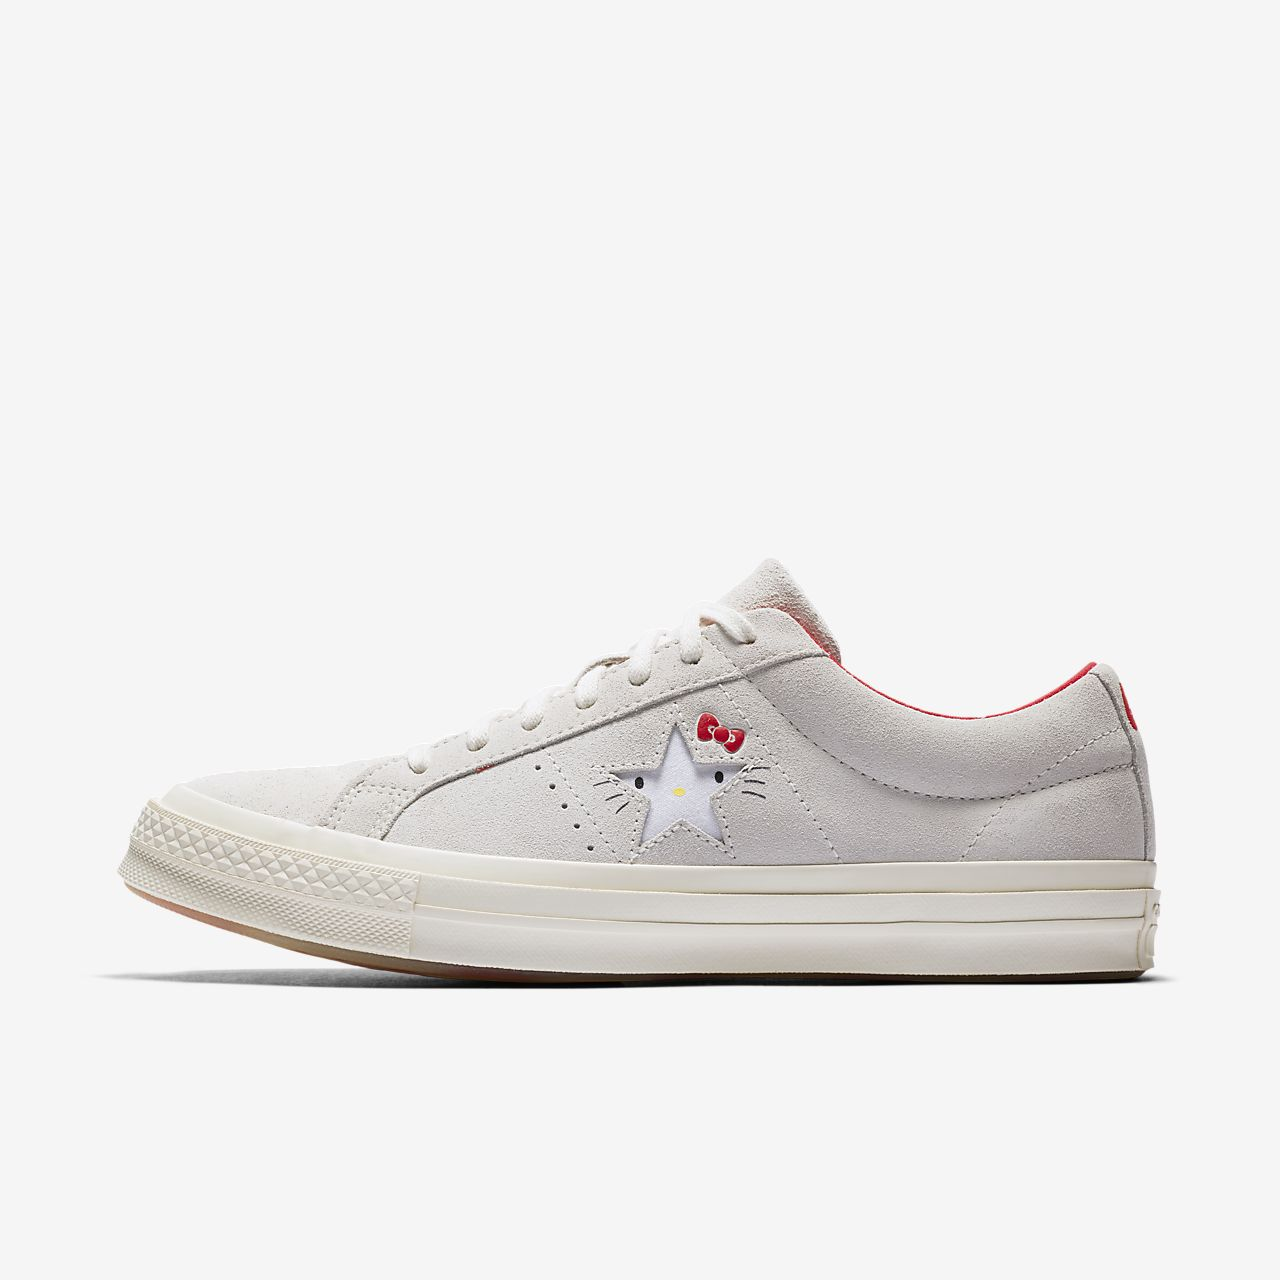 Converse x Hello Kitty One Star Suede Low Top Unisex Shoe